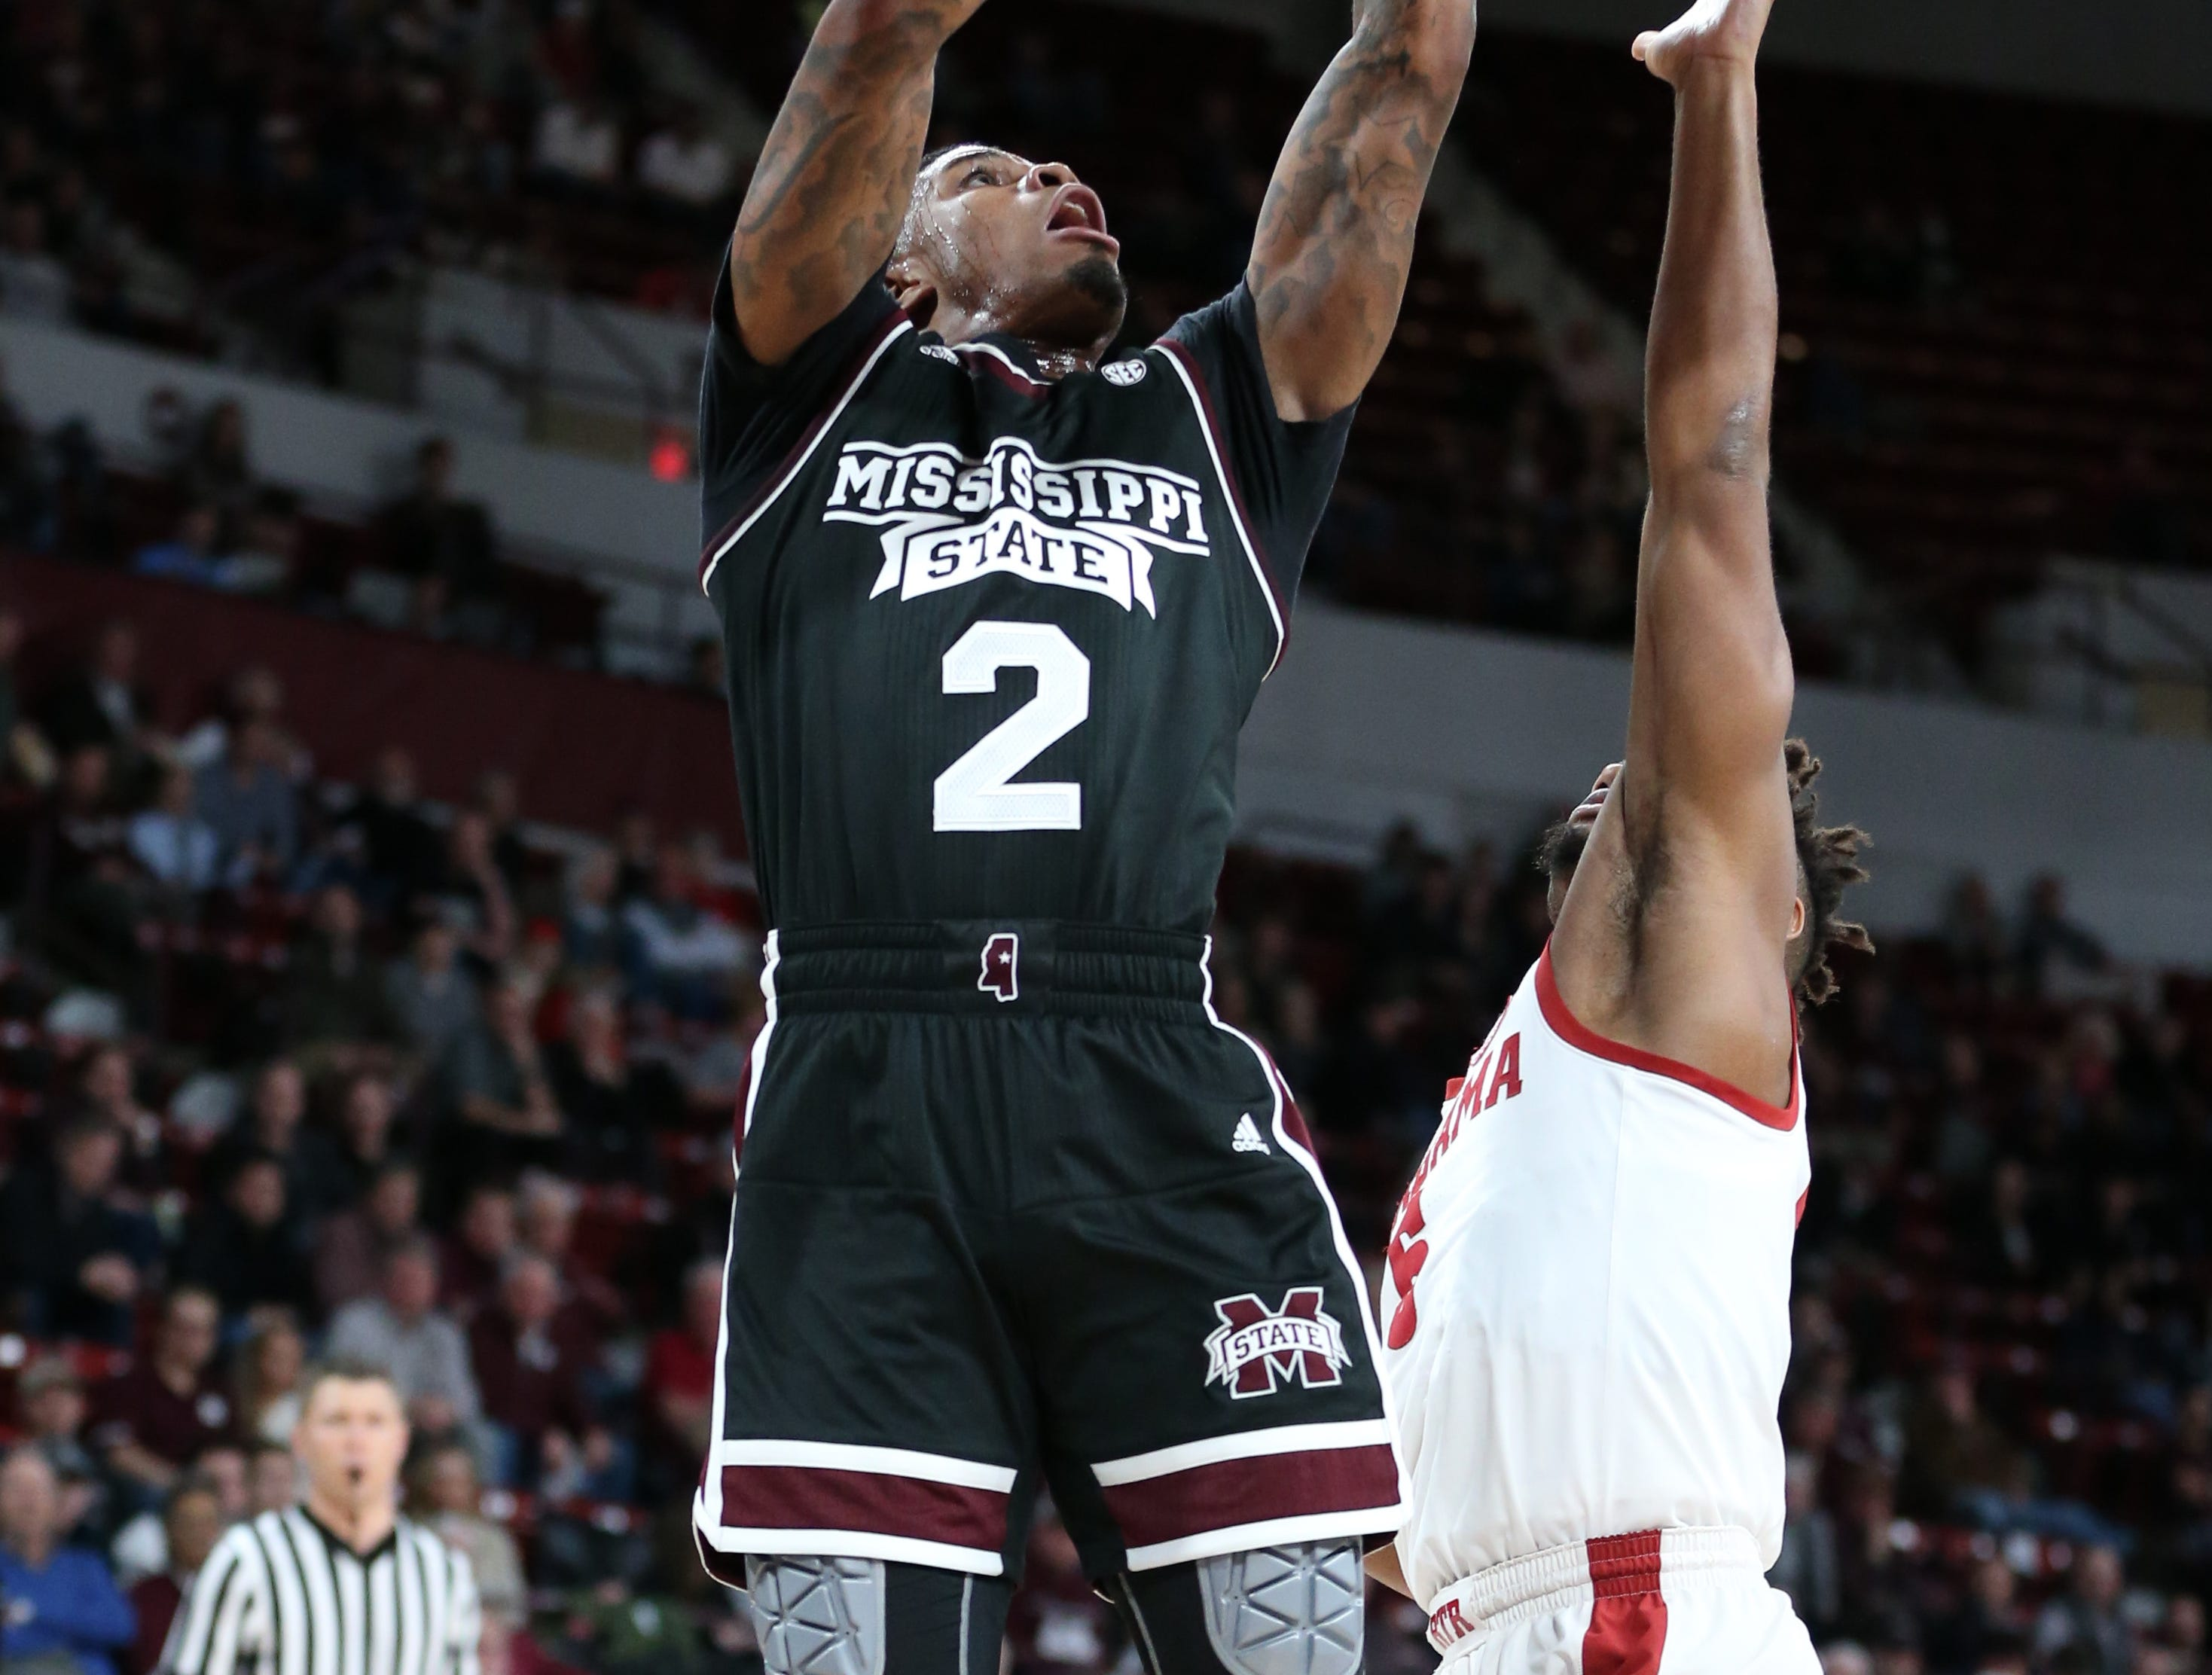 Mississippi State point guard Lamar Peters had a game-high 22 points in the Bulldogs' 81-62 win over Alabama at Humphrey Coliseum on Tuesday Feb. 12.